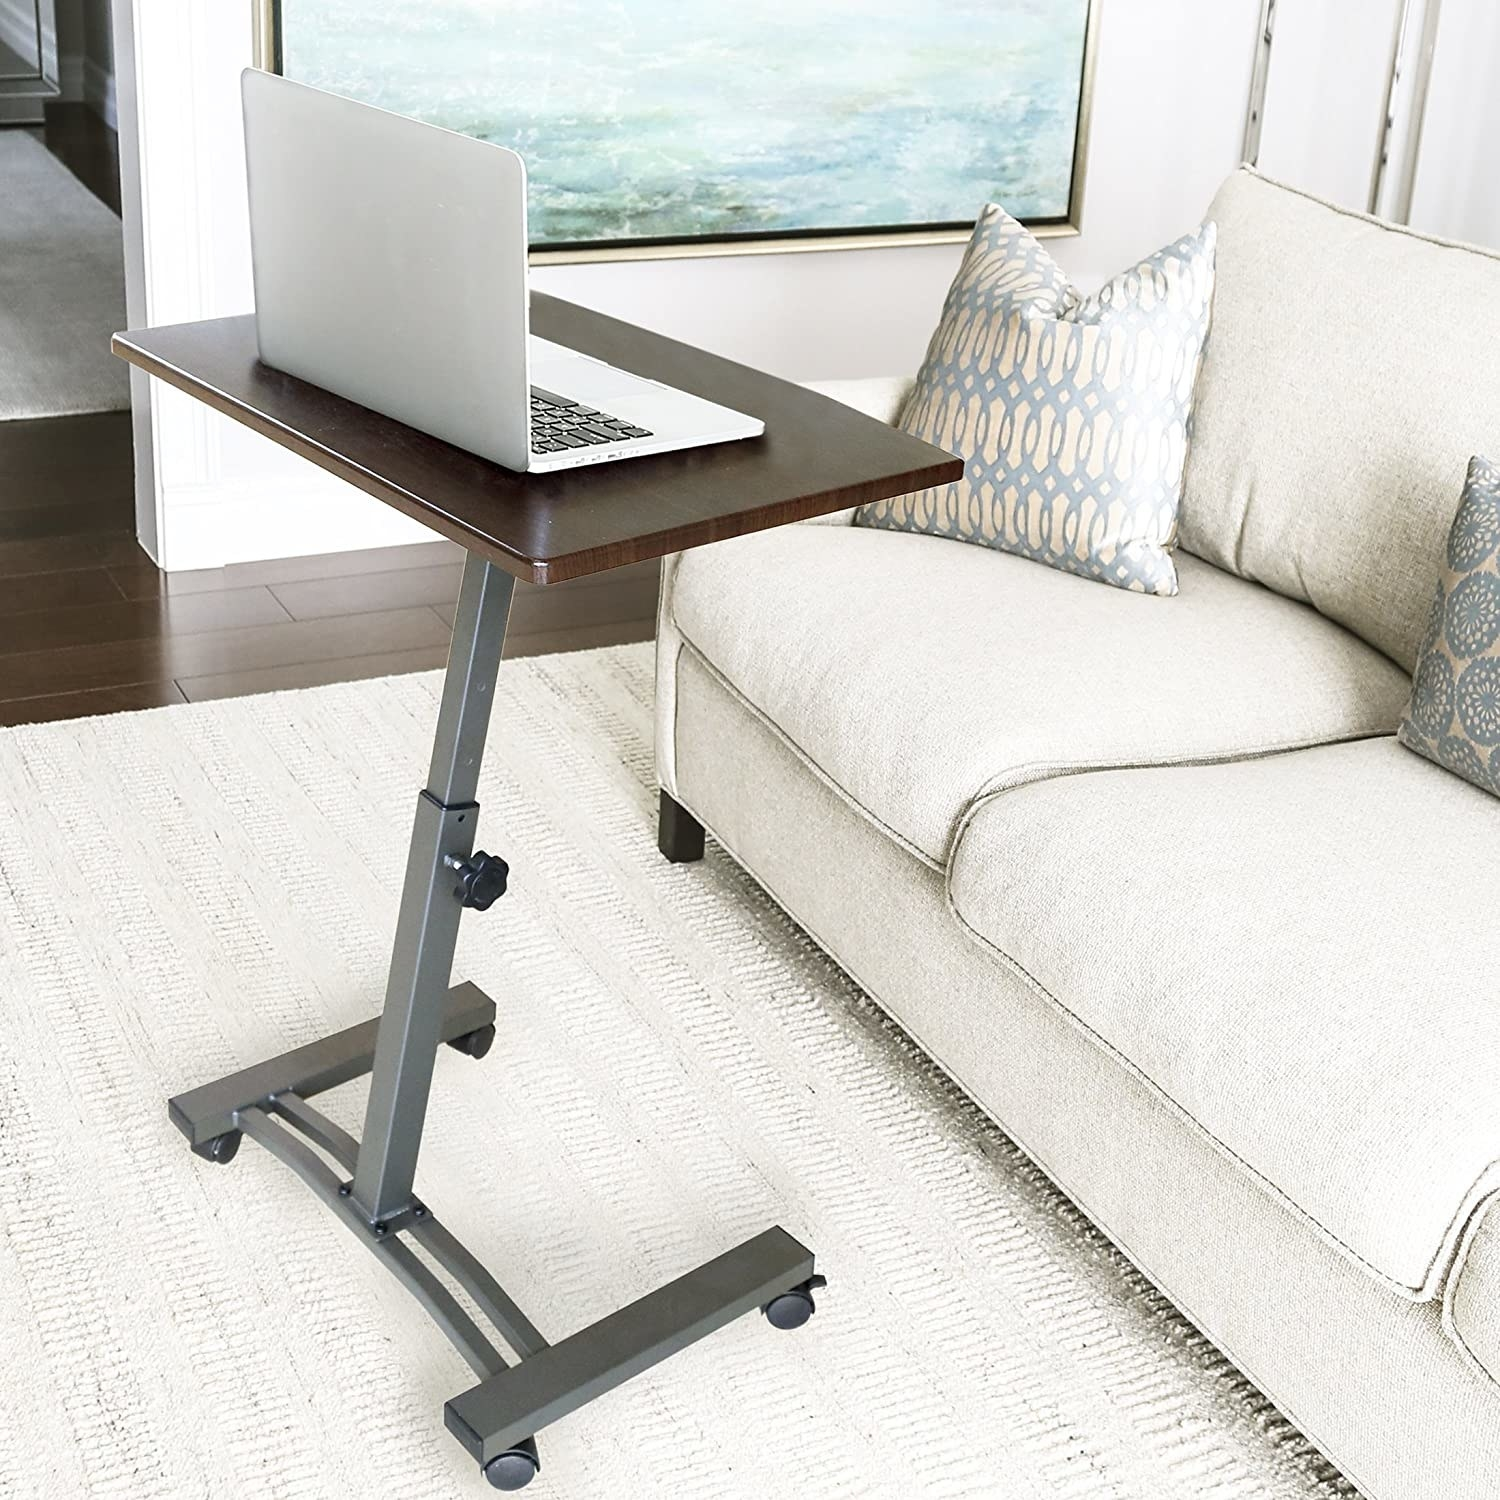 The adjustable desk with wheels at the bottom and brown wood top